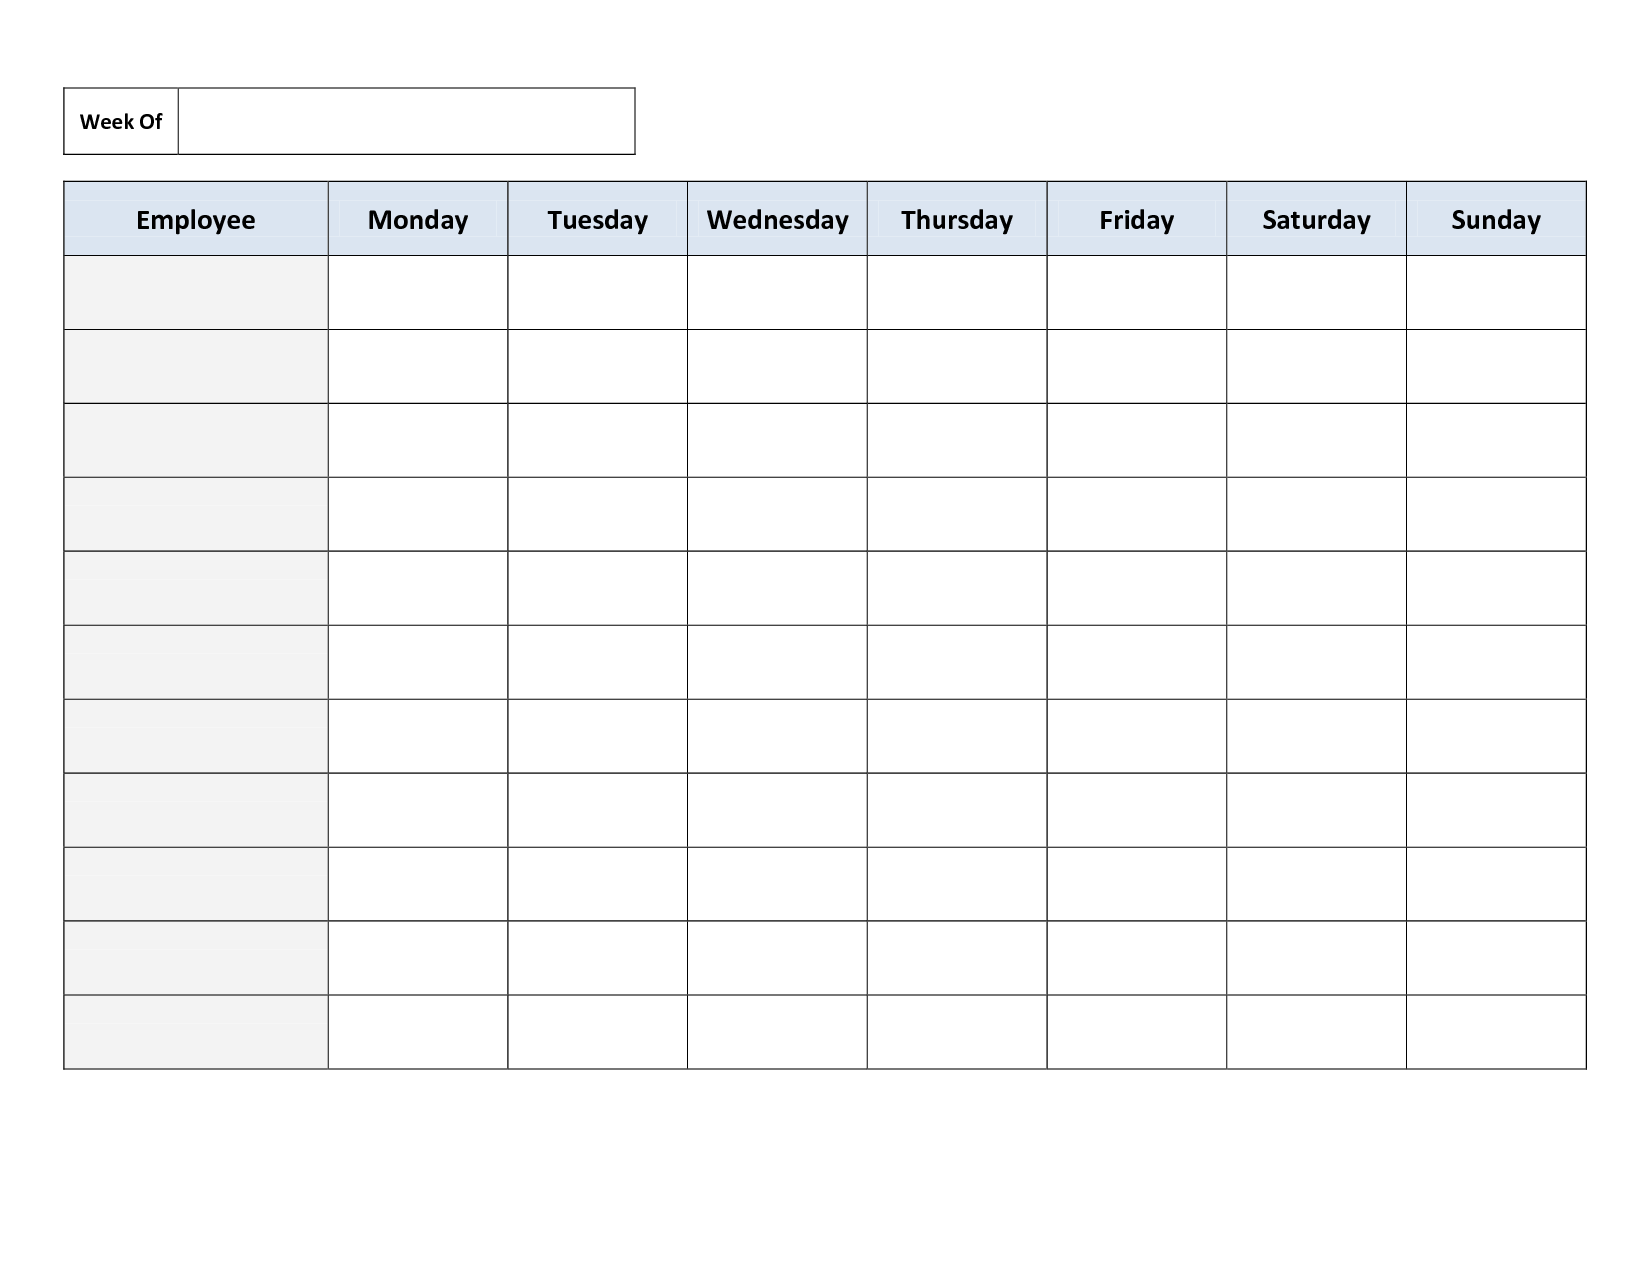 FREE Printable Work Schedule | Pinterest | Free printable, Free